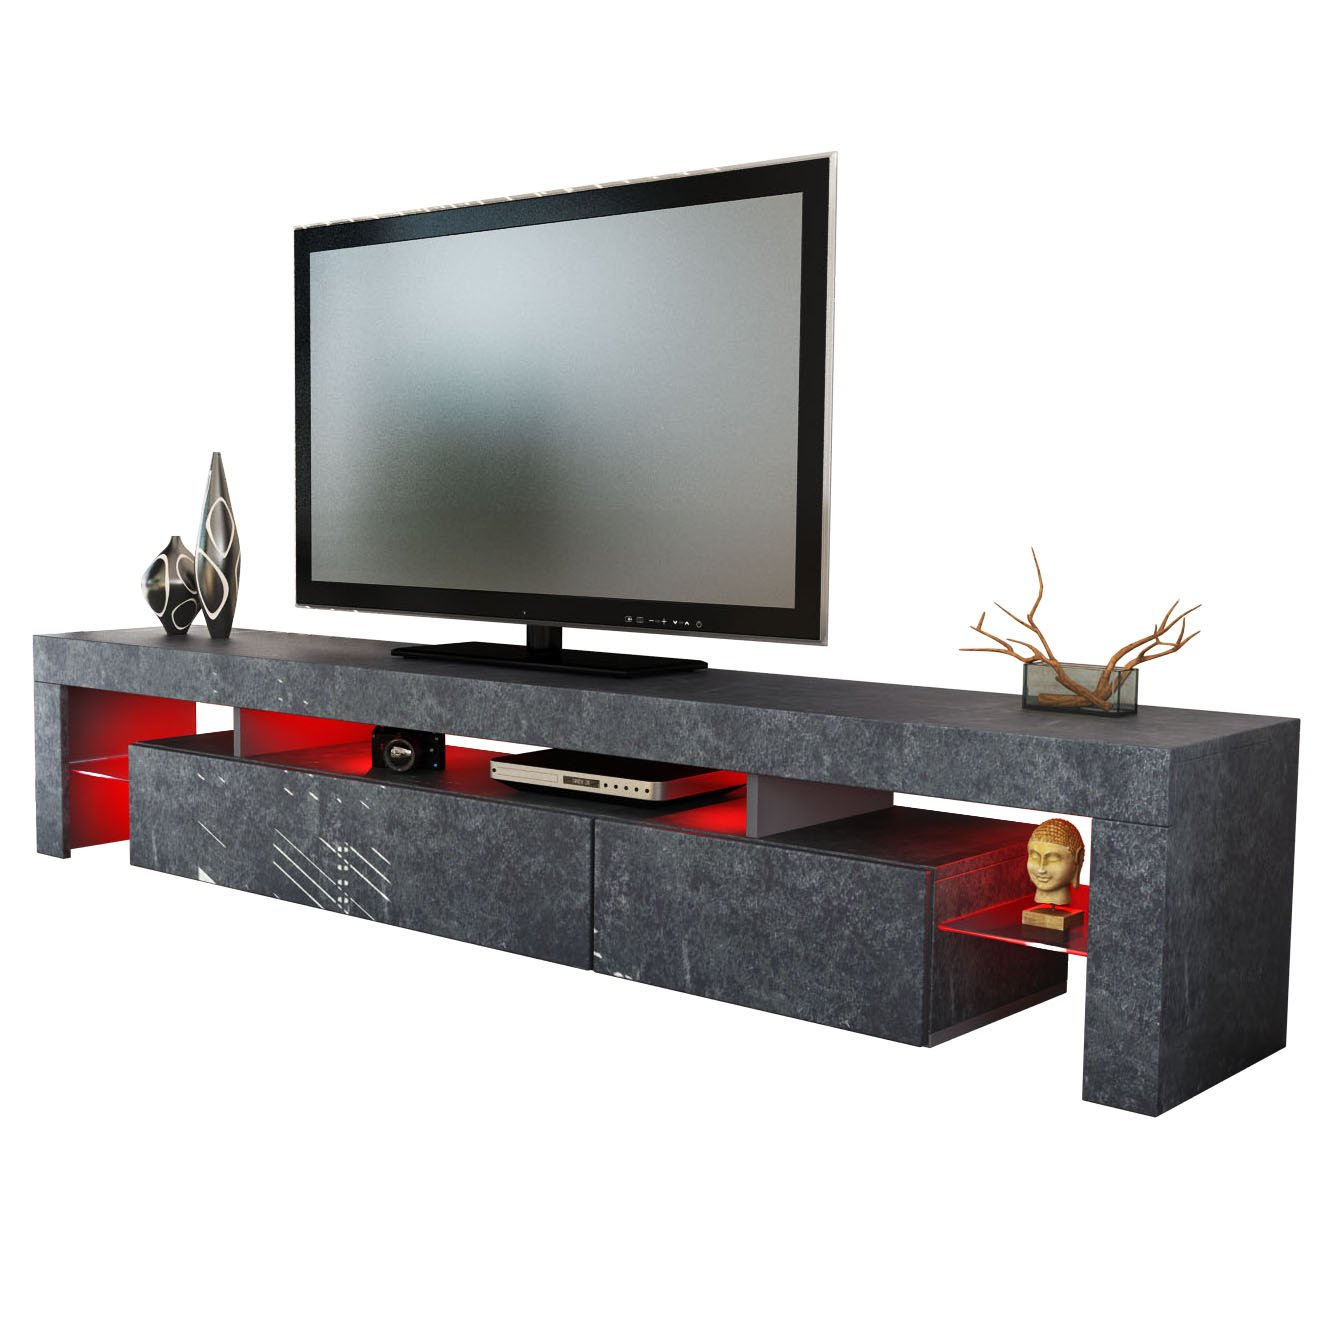 Meuble Tv Bas Et Long Urbantrott Com # Table Bass Tele